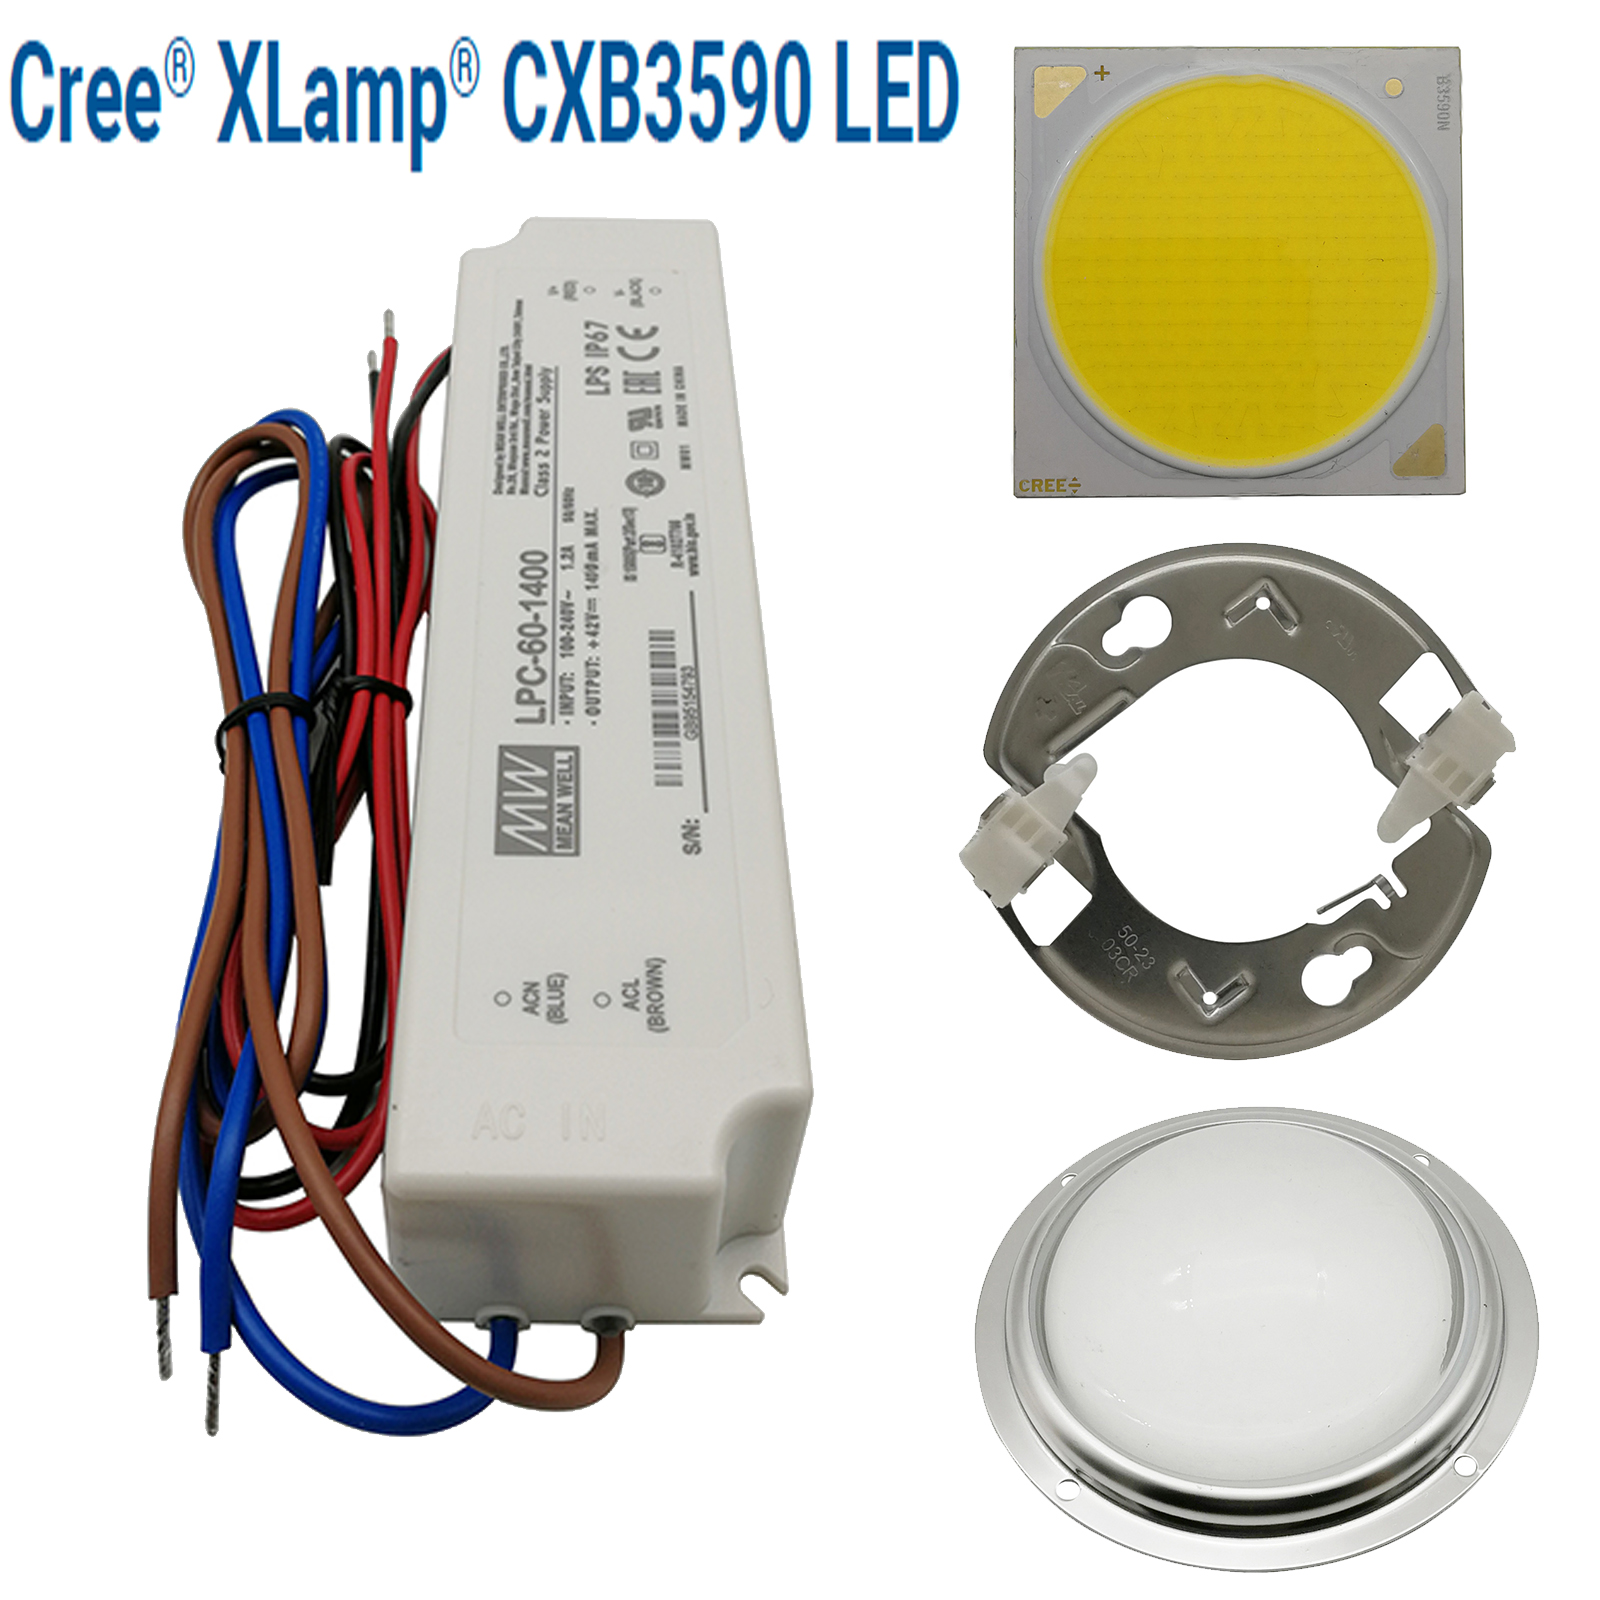 CREE CXB3590 <font><b>COB</b></font> <font><b>LED</b></font> Wachsen Licht DIY Modul <font><b>LED</b></font> Array Wachsen Lampe Indoor-Anlage Ideal Stahl Halter MEANWELL Fahrer 100mm Glas Objektiv image